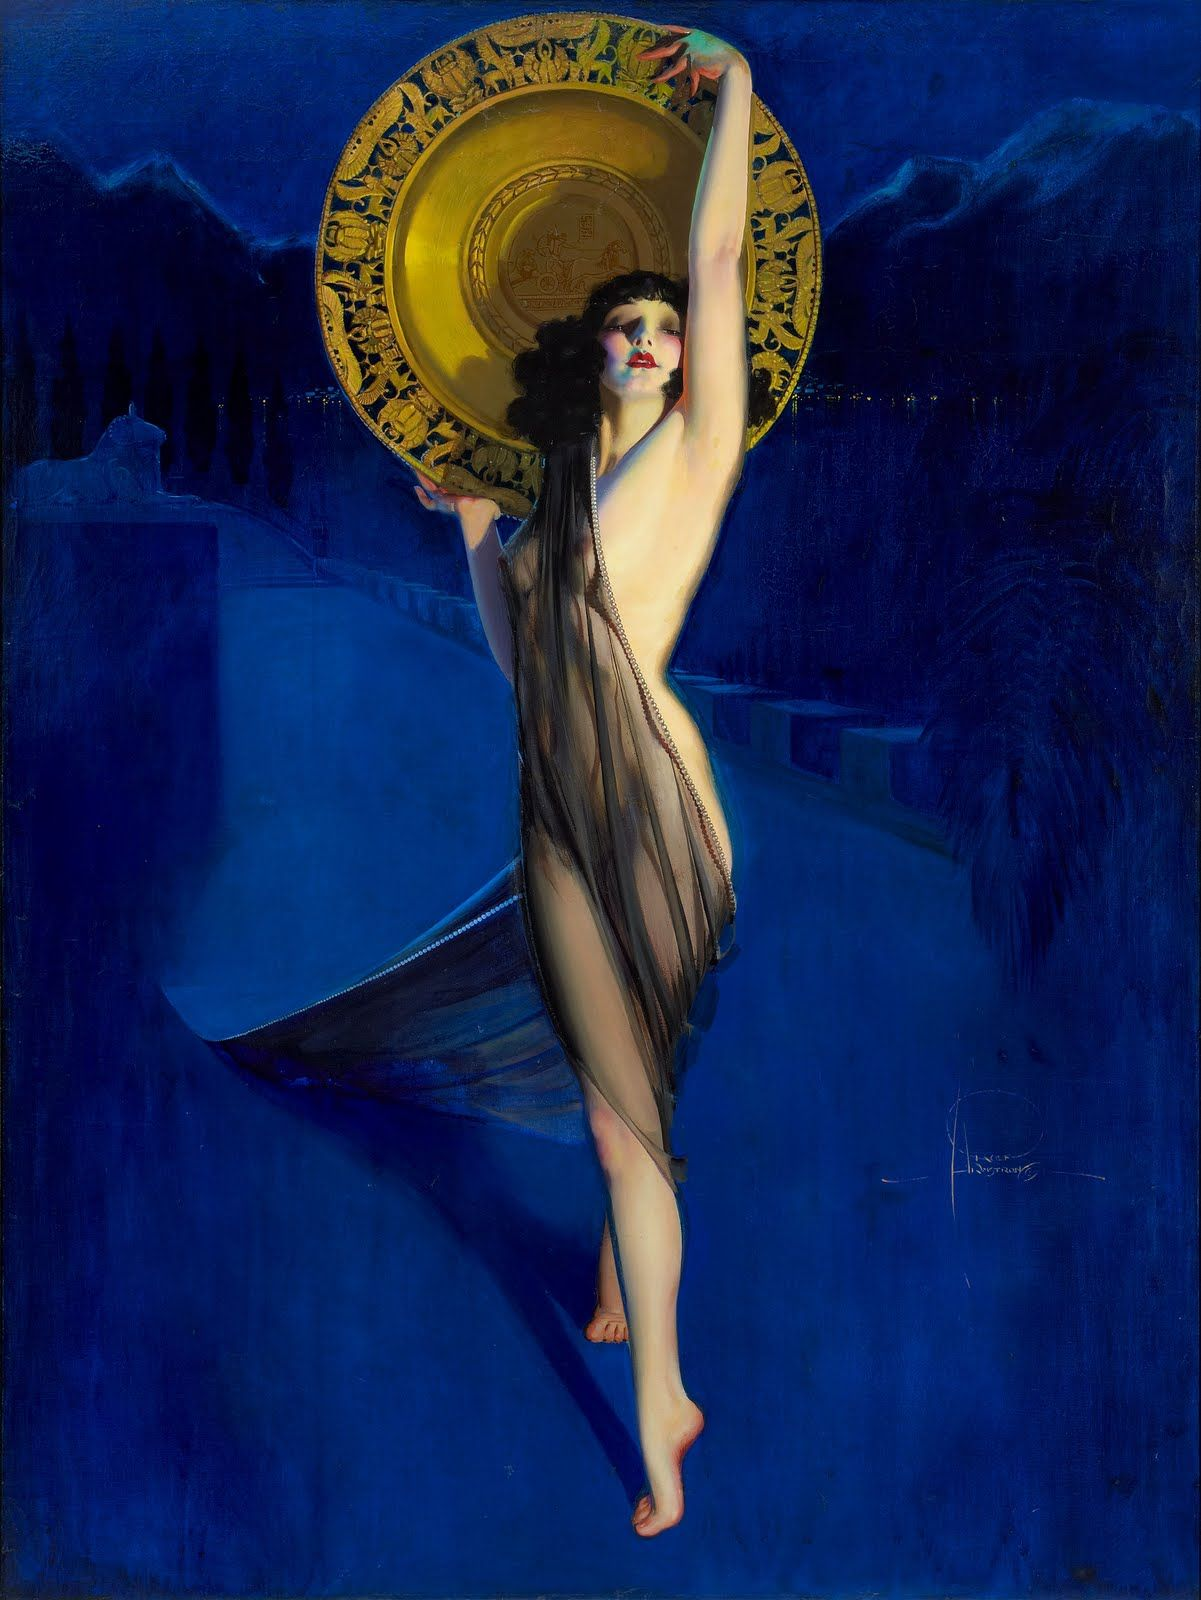 Rolf armstrong moran.clive era egypt lg giglee print pin up nude art deco lgbt